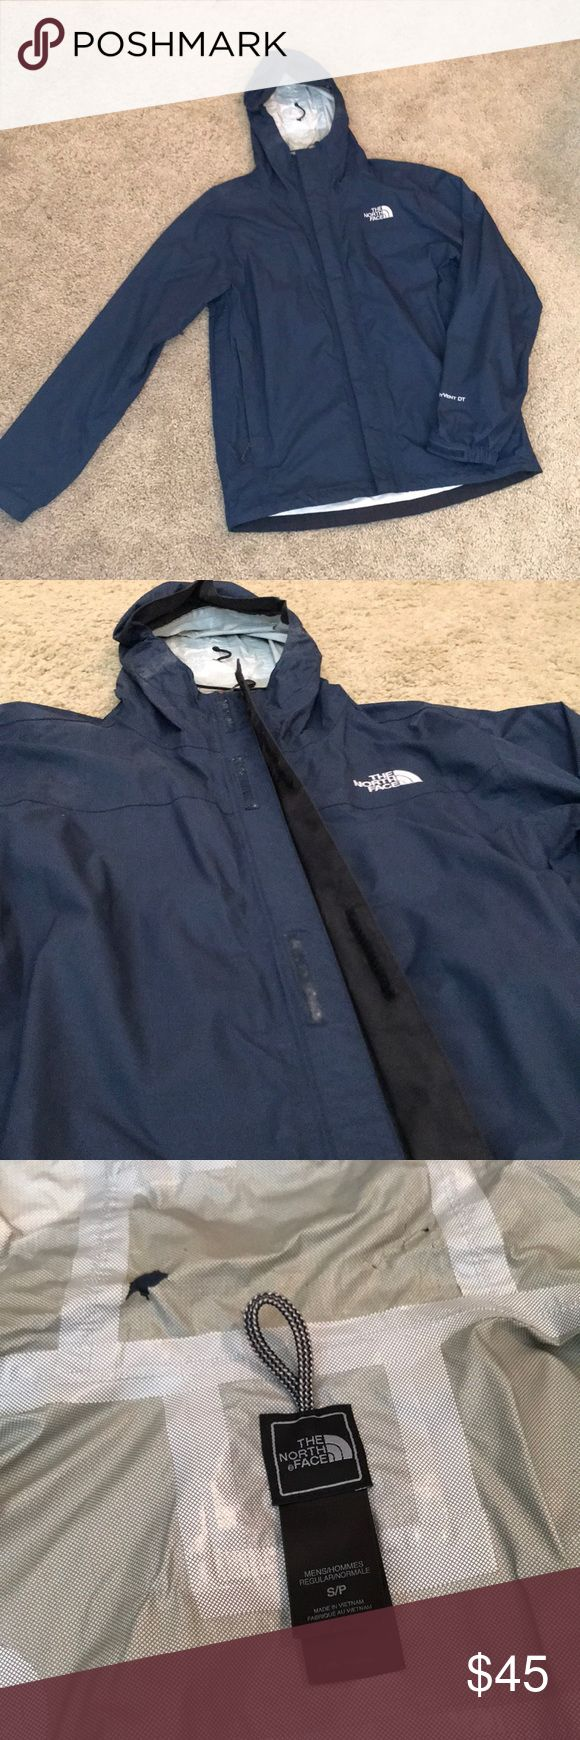 North Face Rain Jacket Men's North Face Rain Jacket.  Navy Blue.  Size Small.  Great Condition!  *I wore this and it fit me like a Women's Medium* *See photos for small rip in the liner on the hood* *See photos for small rip on the double liner in pocket*  Reasonable offers are acceptable!! North Face Jackets & Coats Raincoats